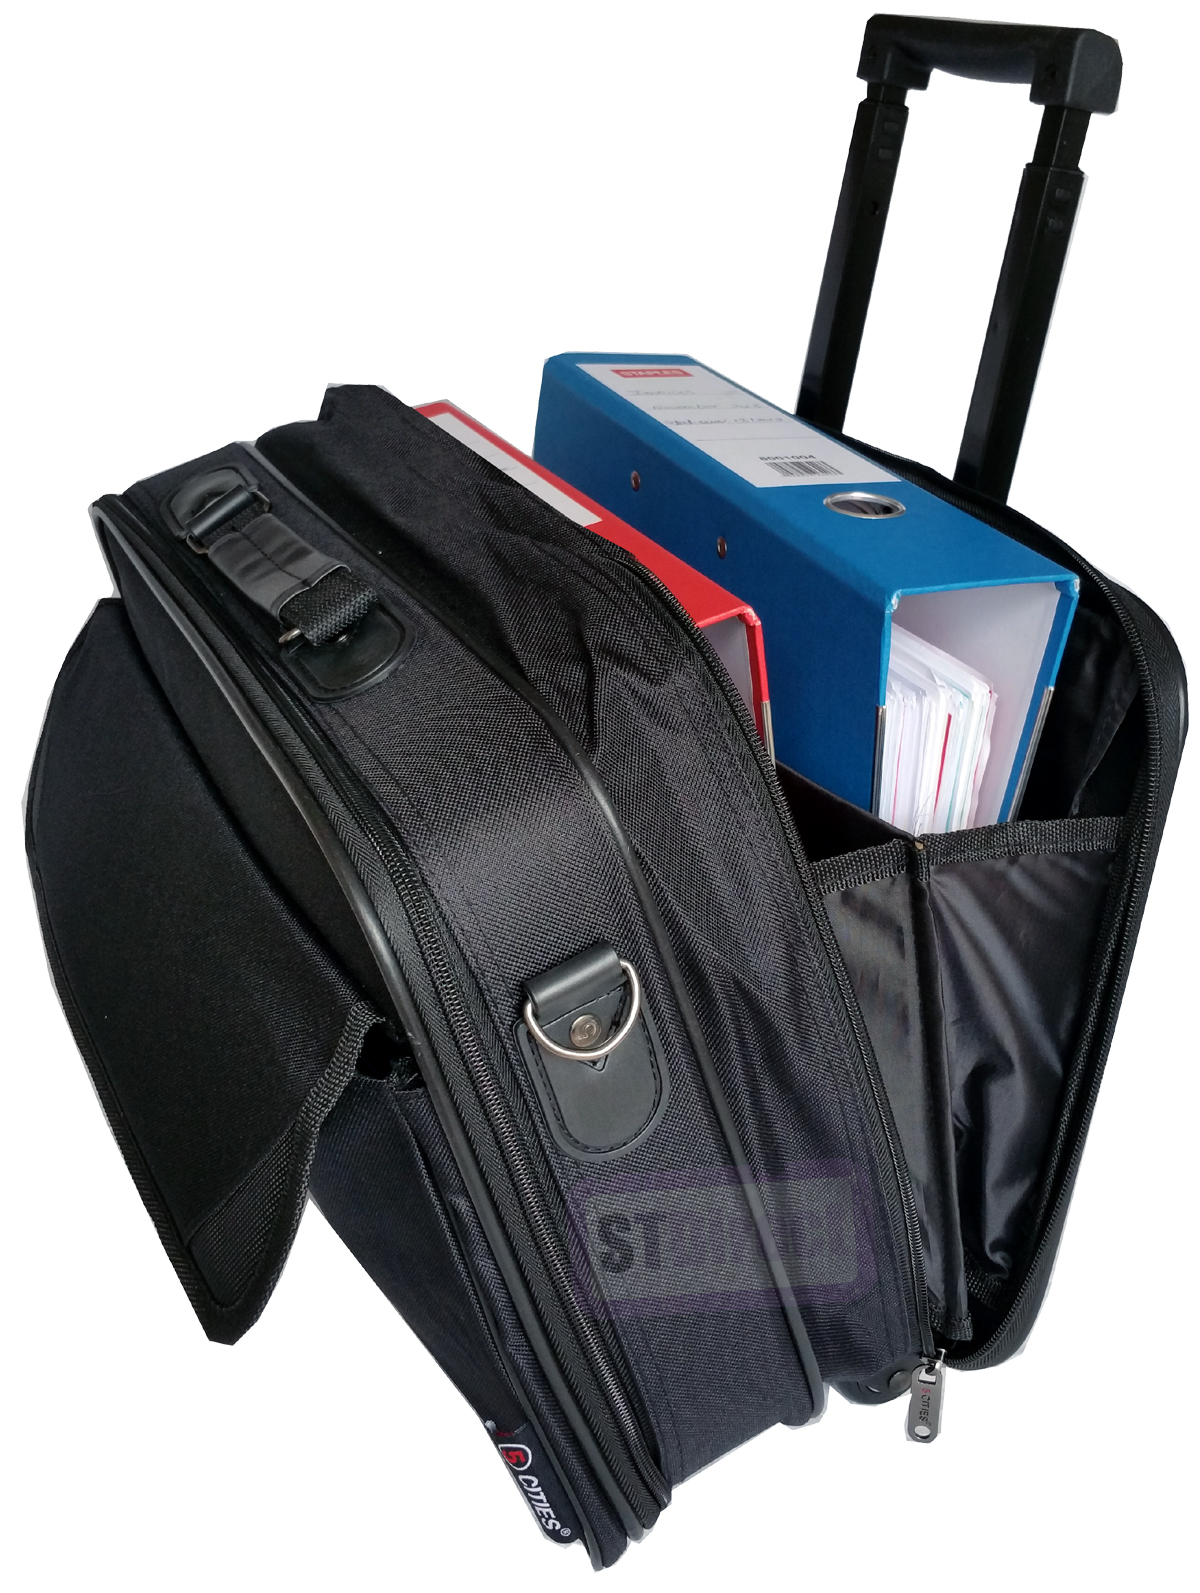 Wheeled Laptop Bag Bussiness Briefcase On Wheels Roller Trolley Case Cabin Bag Briefcases